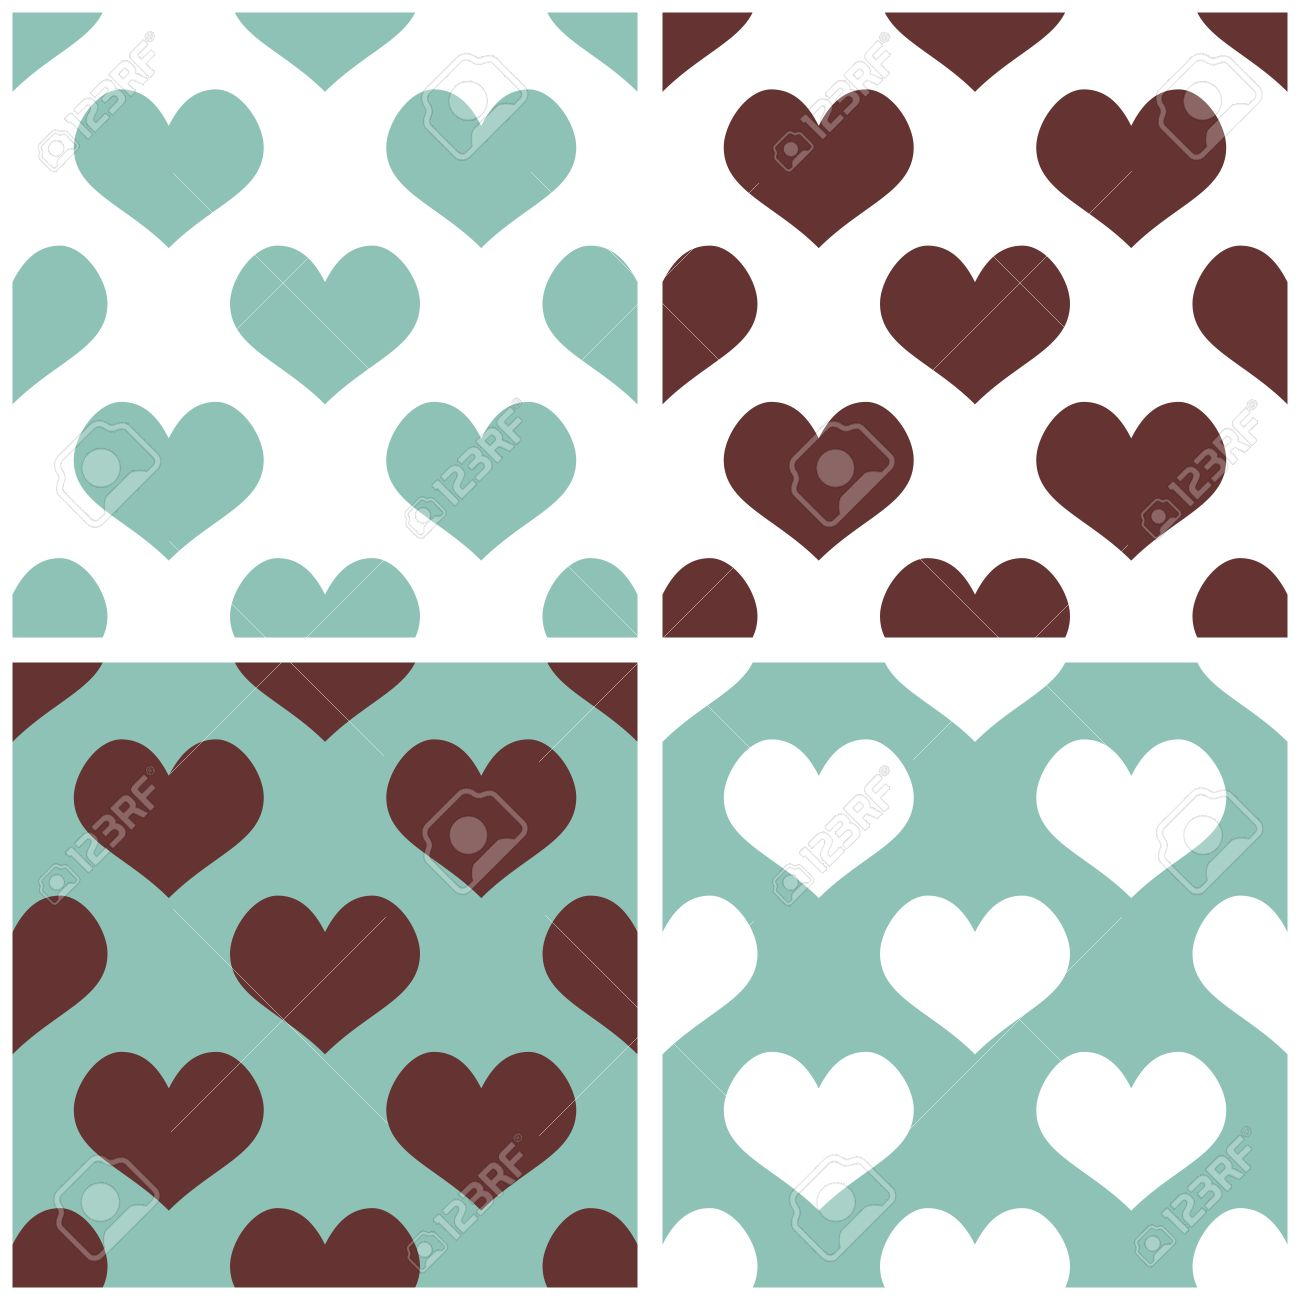 Love clipart mint gree vector free stock Seamless Vector Background Set With Hearts Full Of Love Pattern ... vector free stock